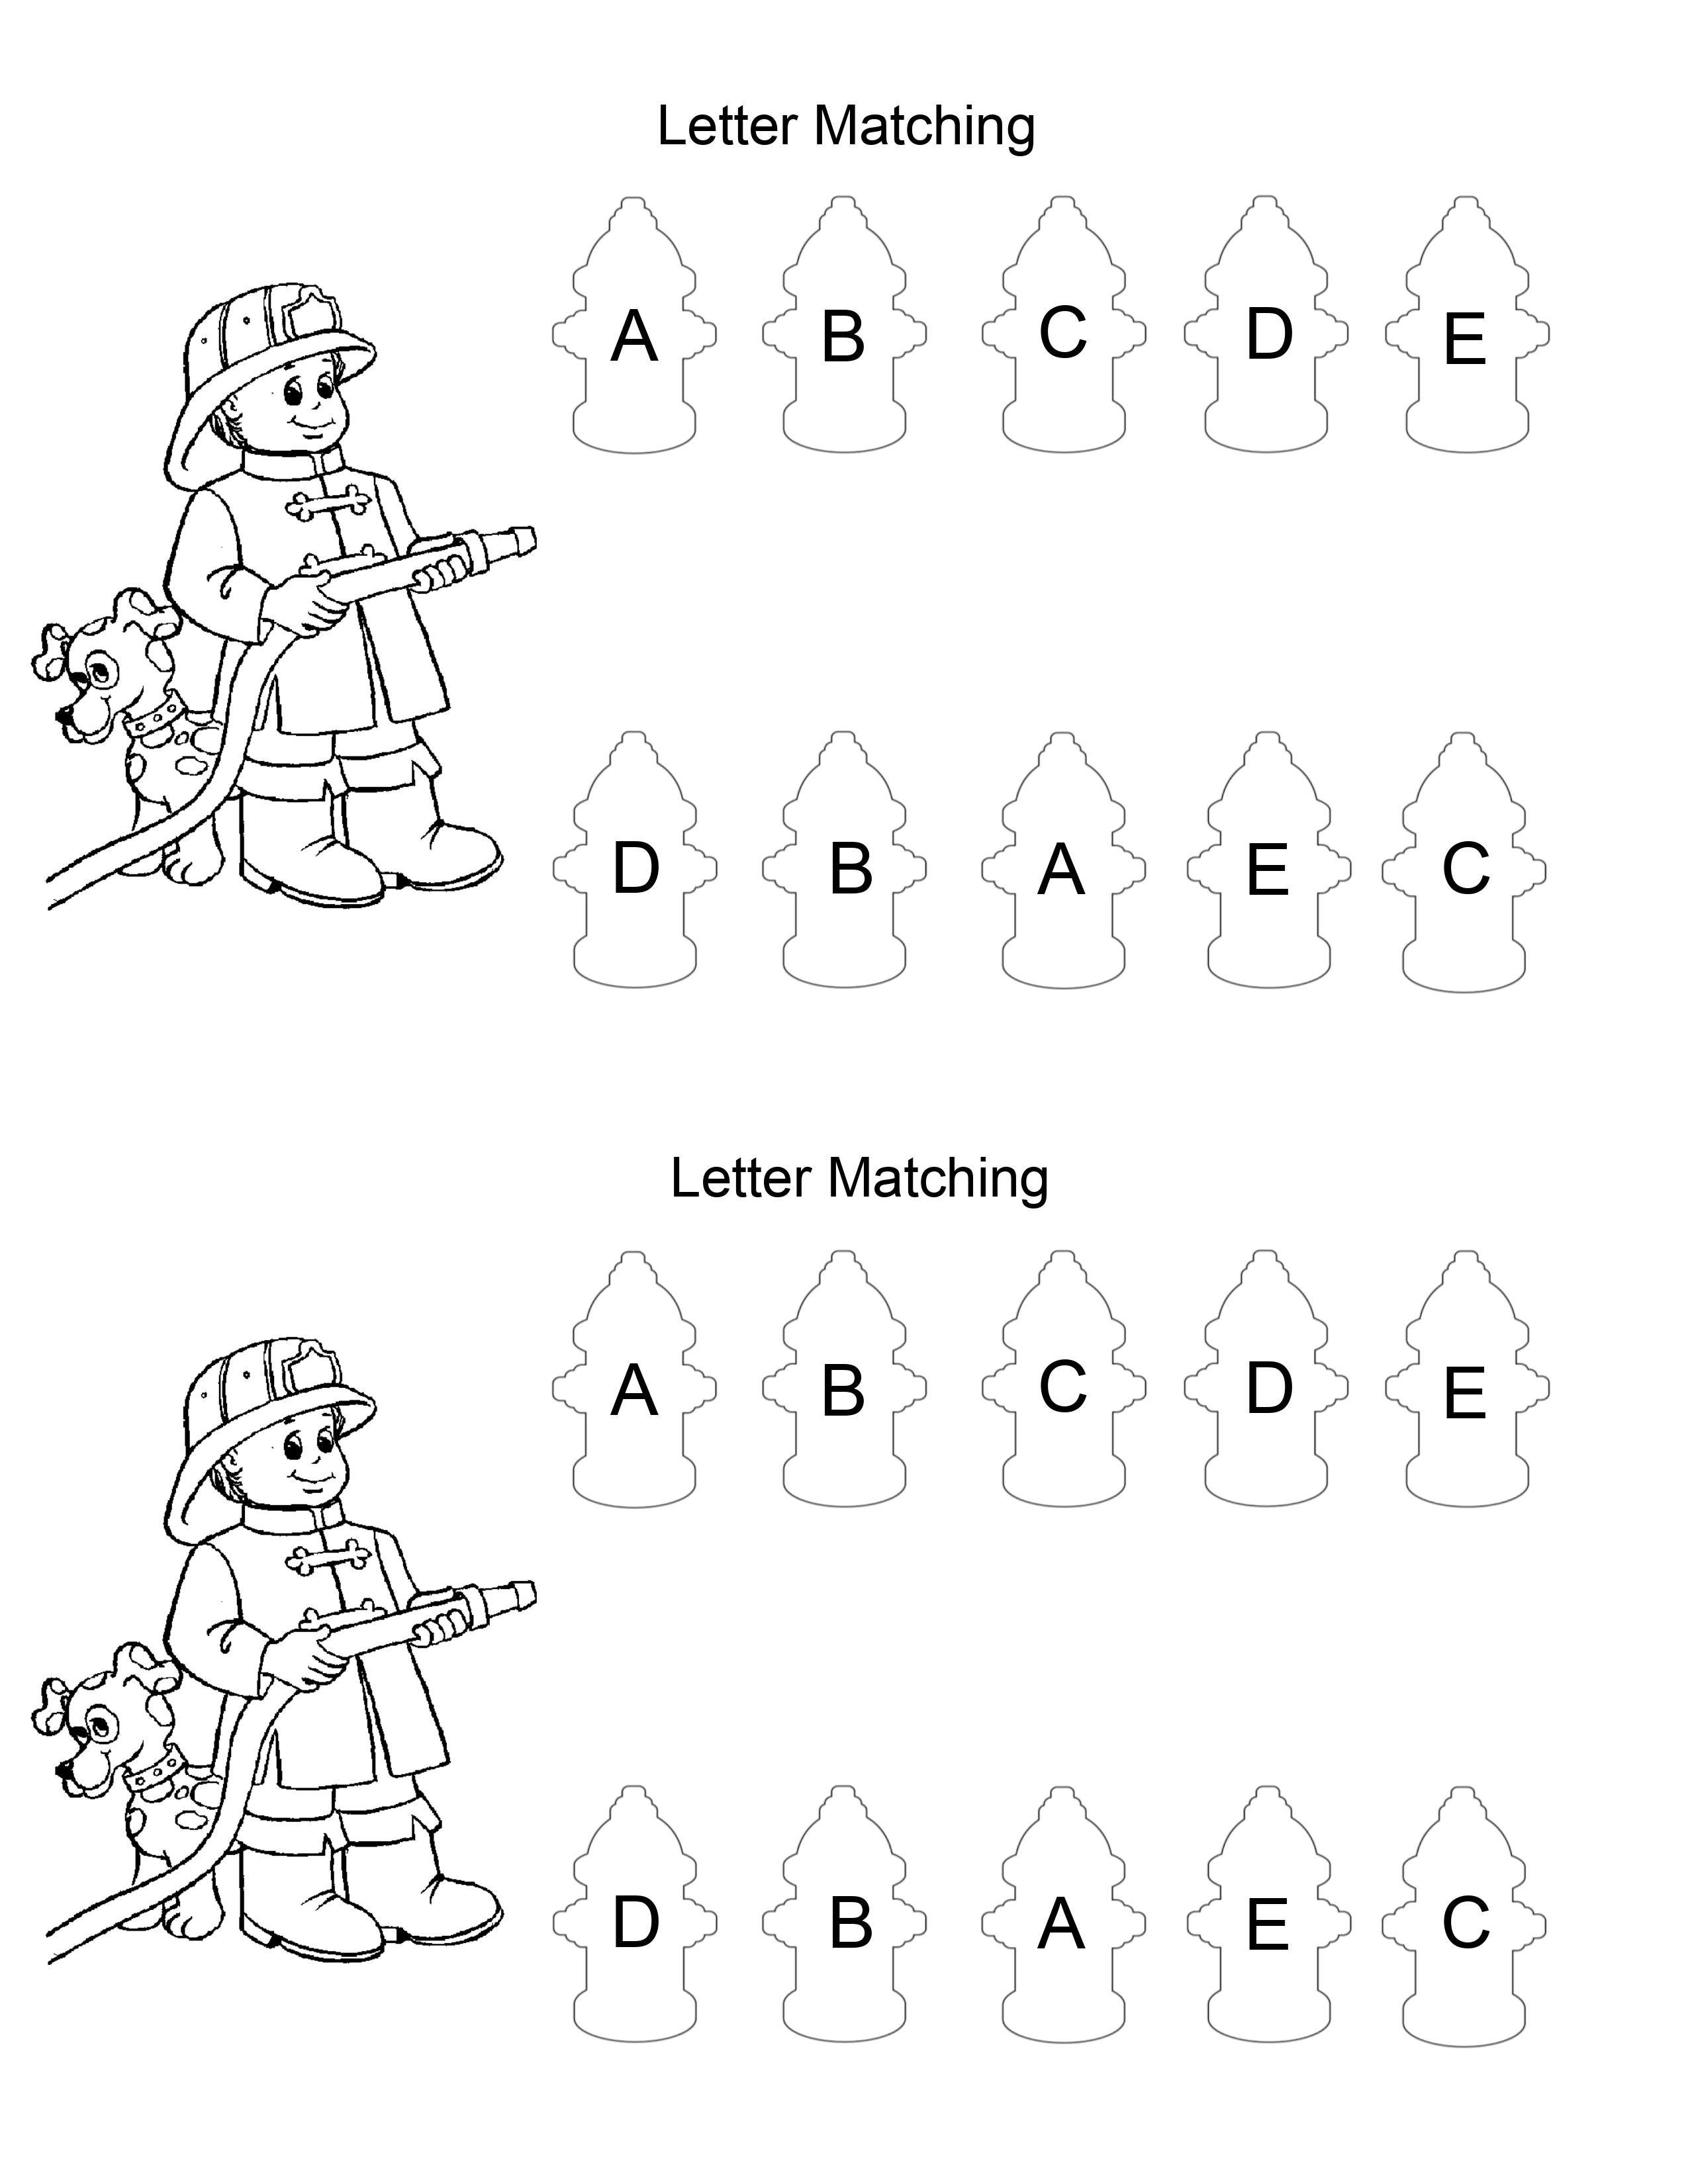 Fire Safety Letter Matching In